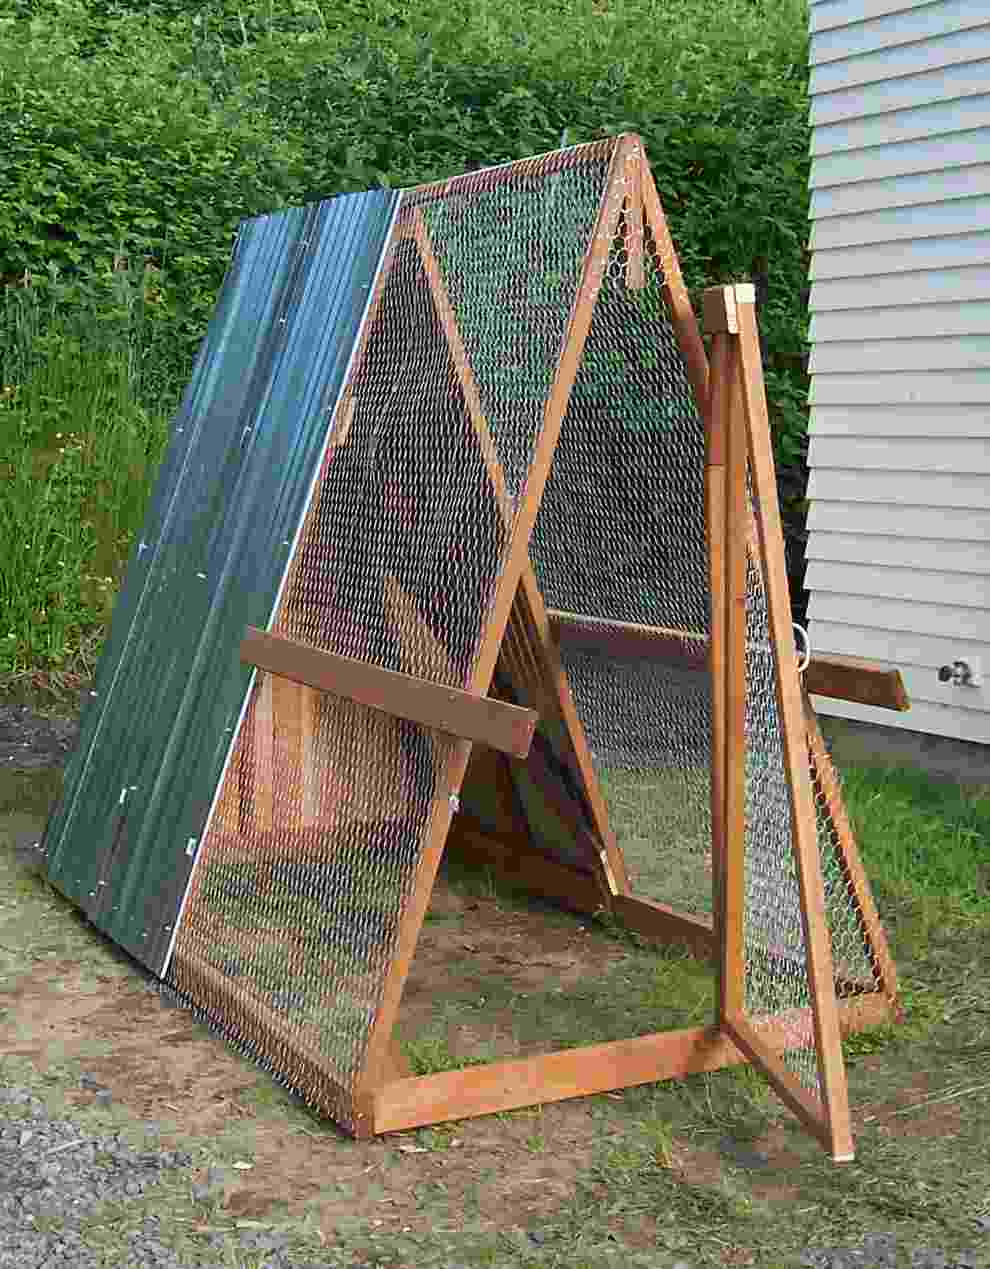 Finished product with roofing & chicken wire screen.